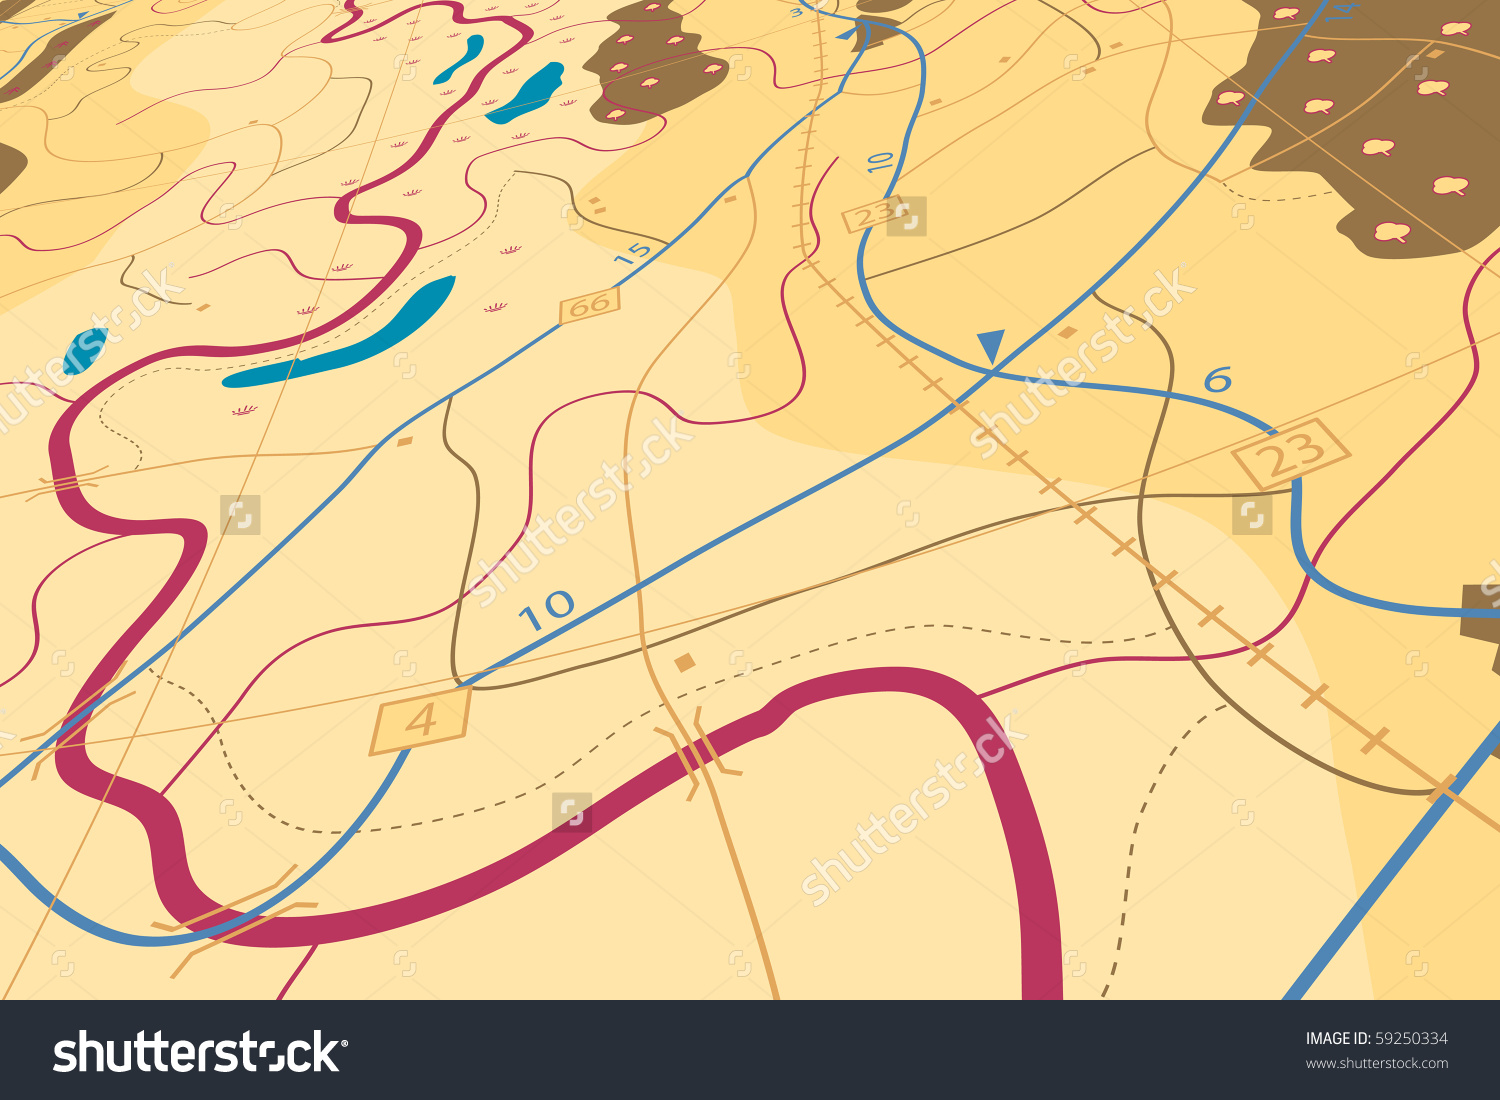 Generic road map clipart png freeuse download Editable Vector Illustration Land Use Stock Vectors Clip Art ... png freeuse download